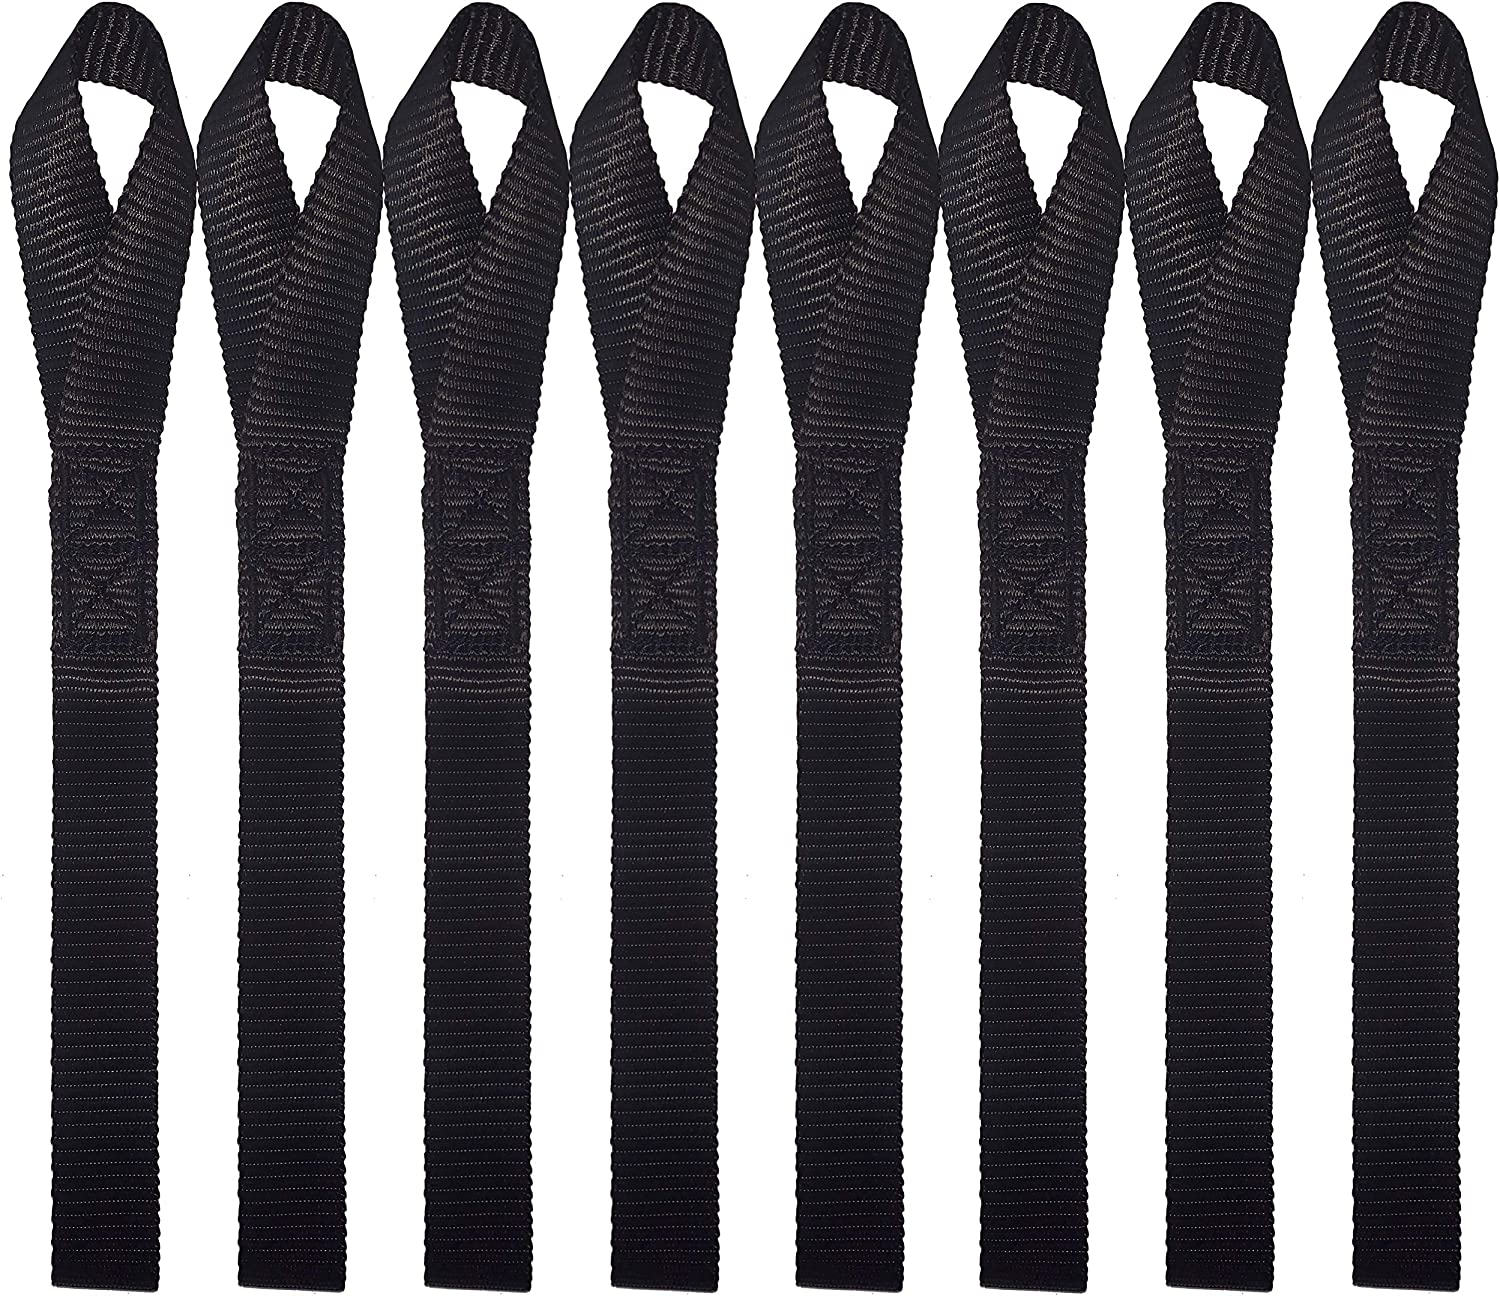 "8 Pack 1/"" x 12/"" for securing ATV Black Scooters /& Dirt Bike UTV Majestic Ally Soft Loop Tie Down Straps Lawn /& Garden Equipment Snow Mobile Motorcycles"